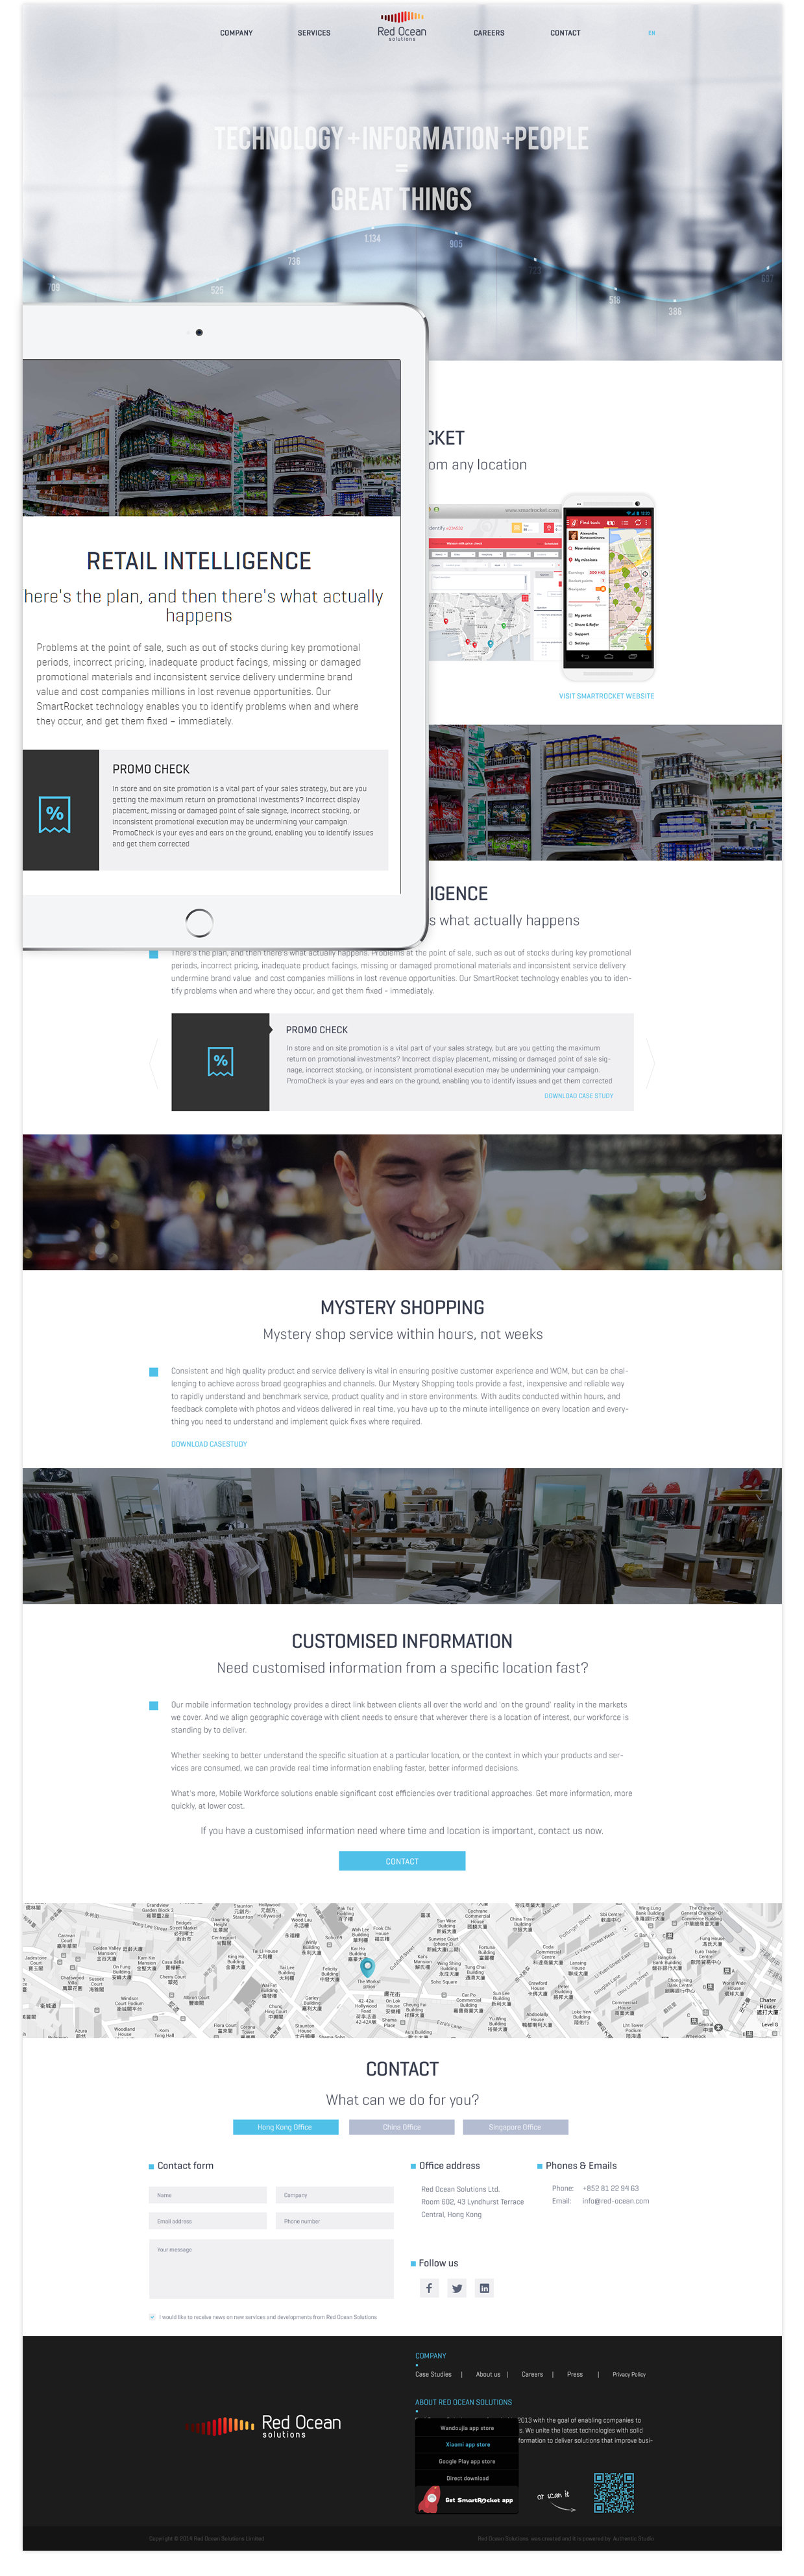 https://media.authentic-studio.com/web-content/uploads/2020/11/full-corporate-identity-package-for-hong-kong-market-example-5.jpg